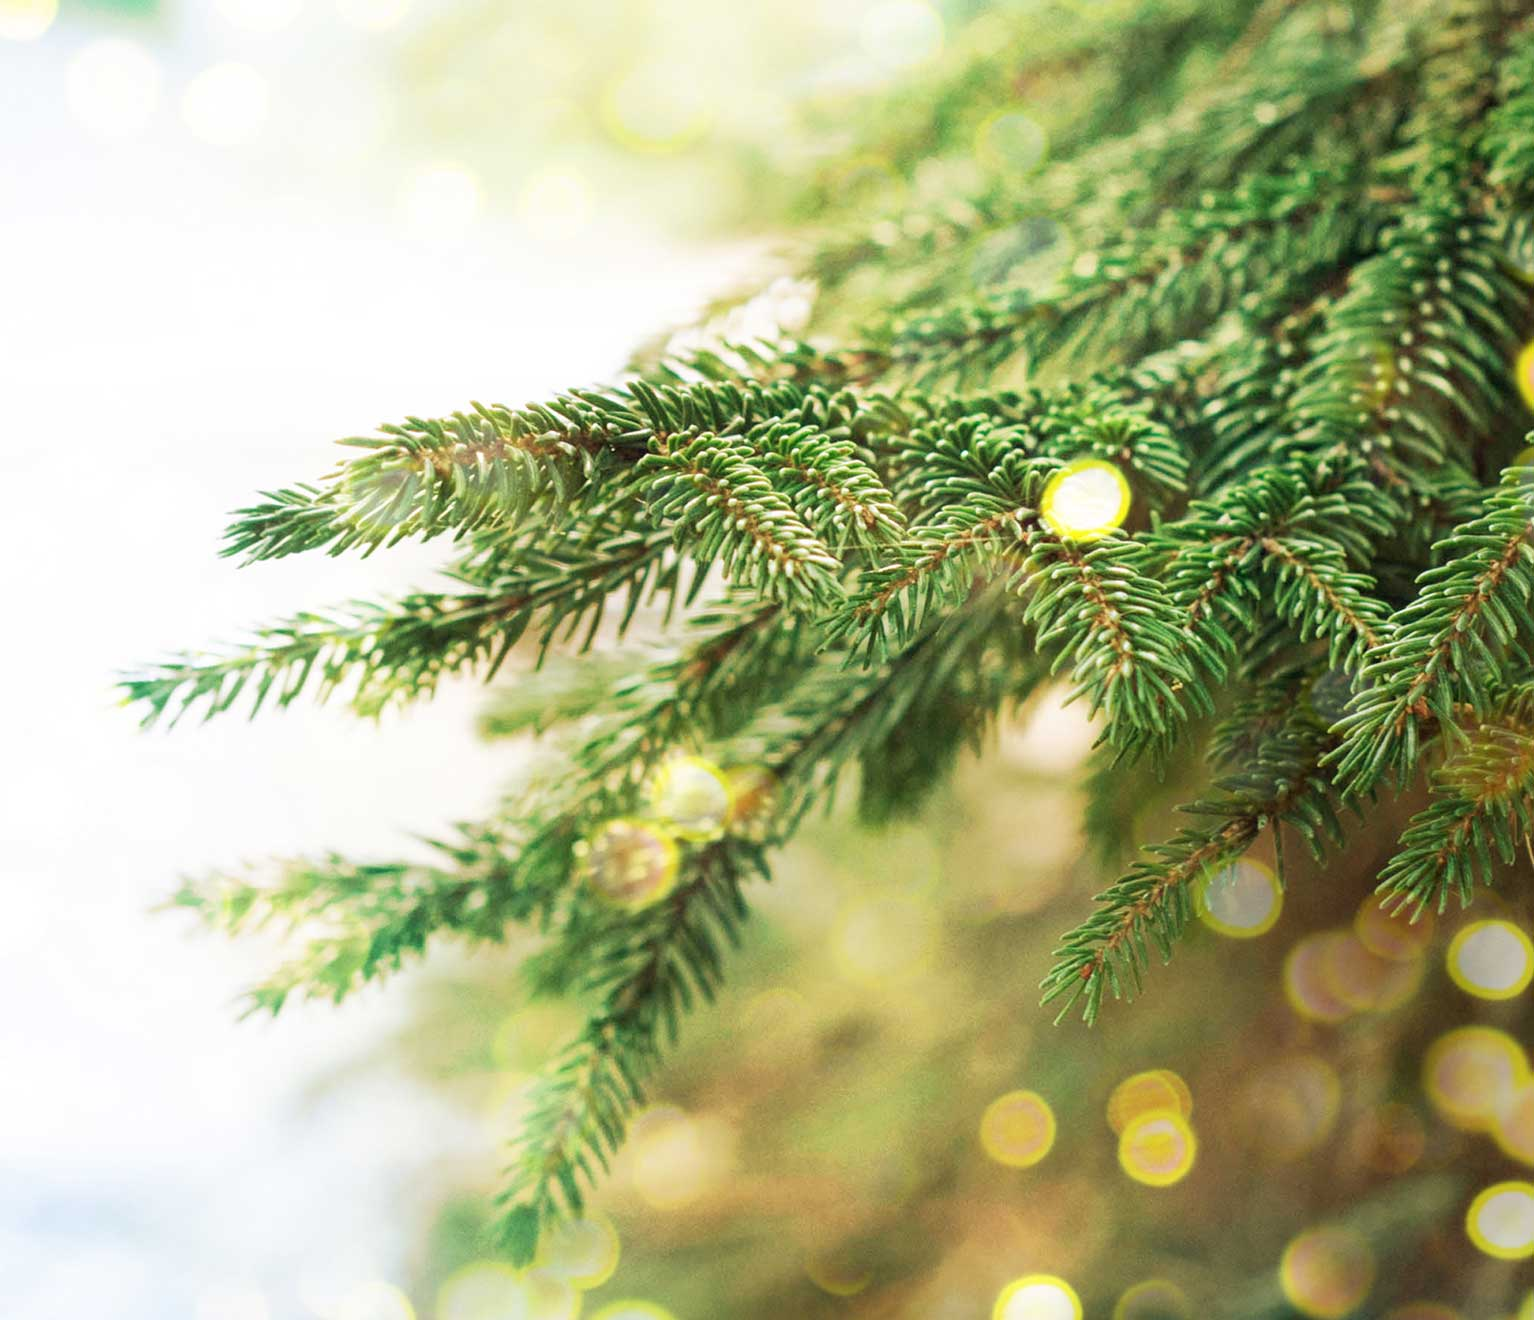 Disposing Of Christmas Trees: American Family Insurance